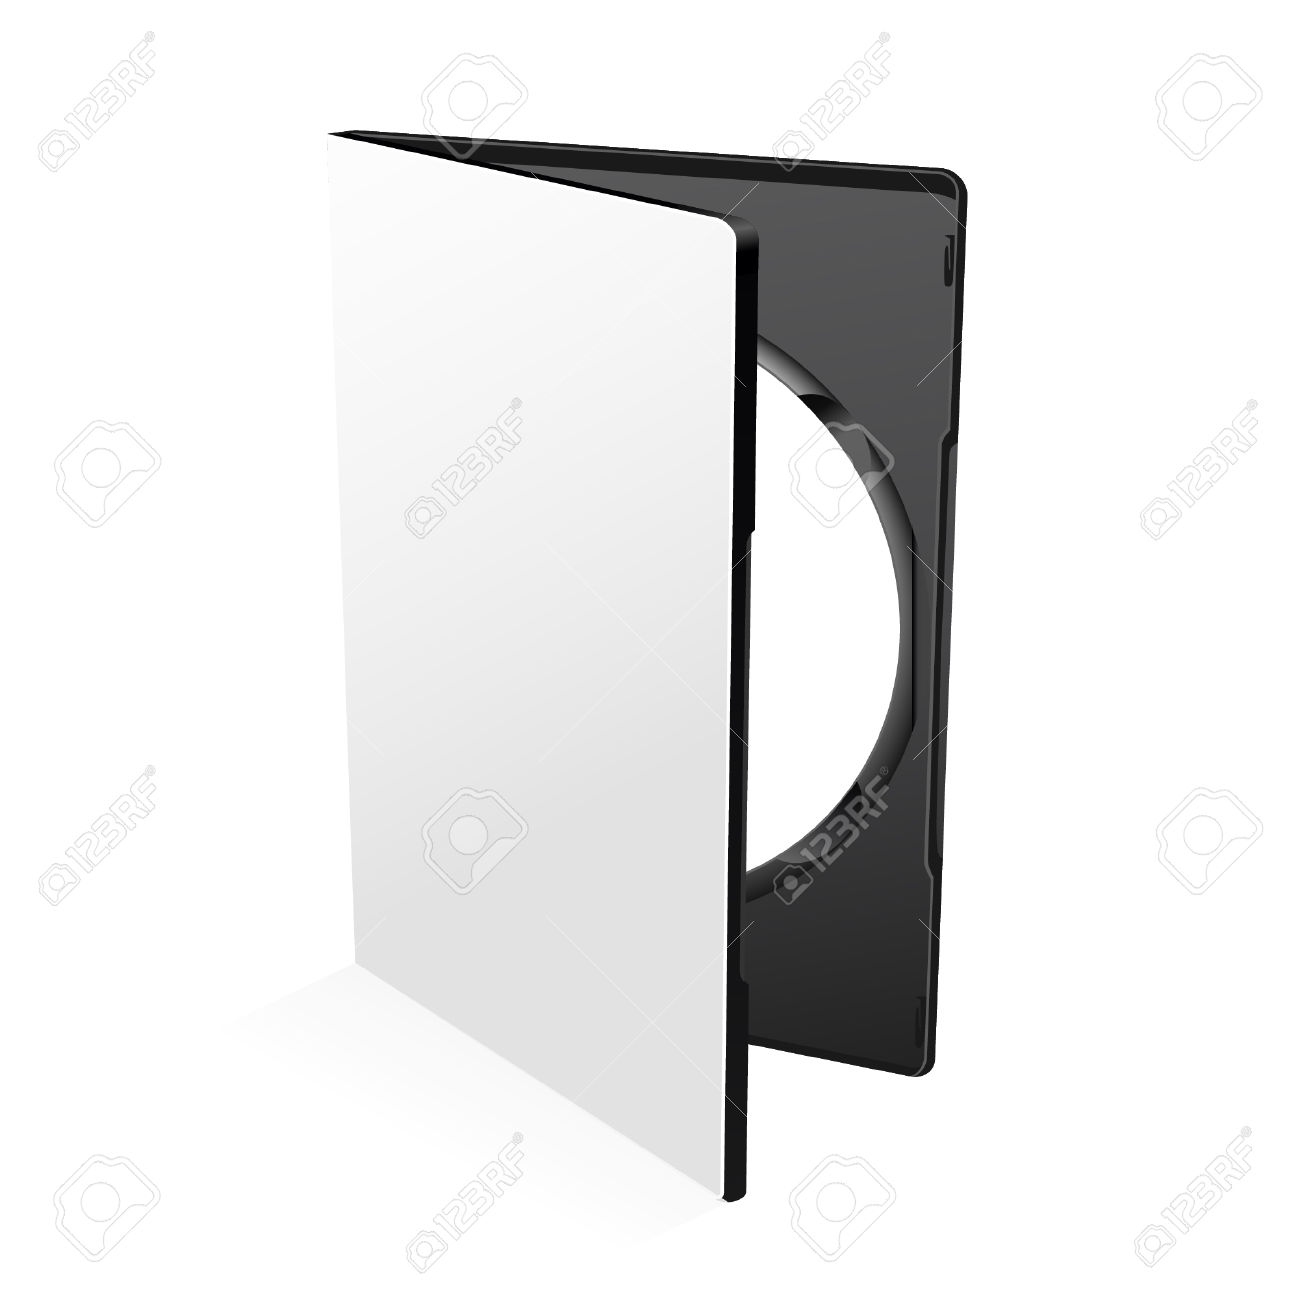 Blank Dvd Case Isolated On White With Disc Inside Royalty Free.